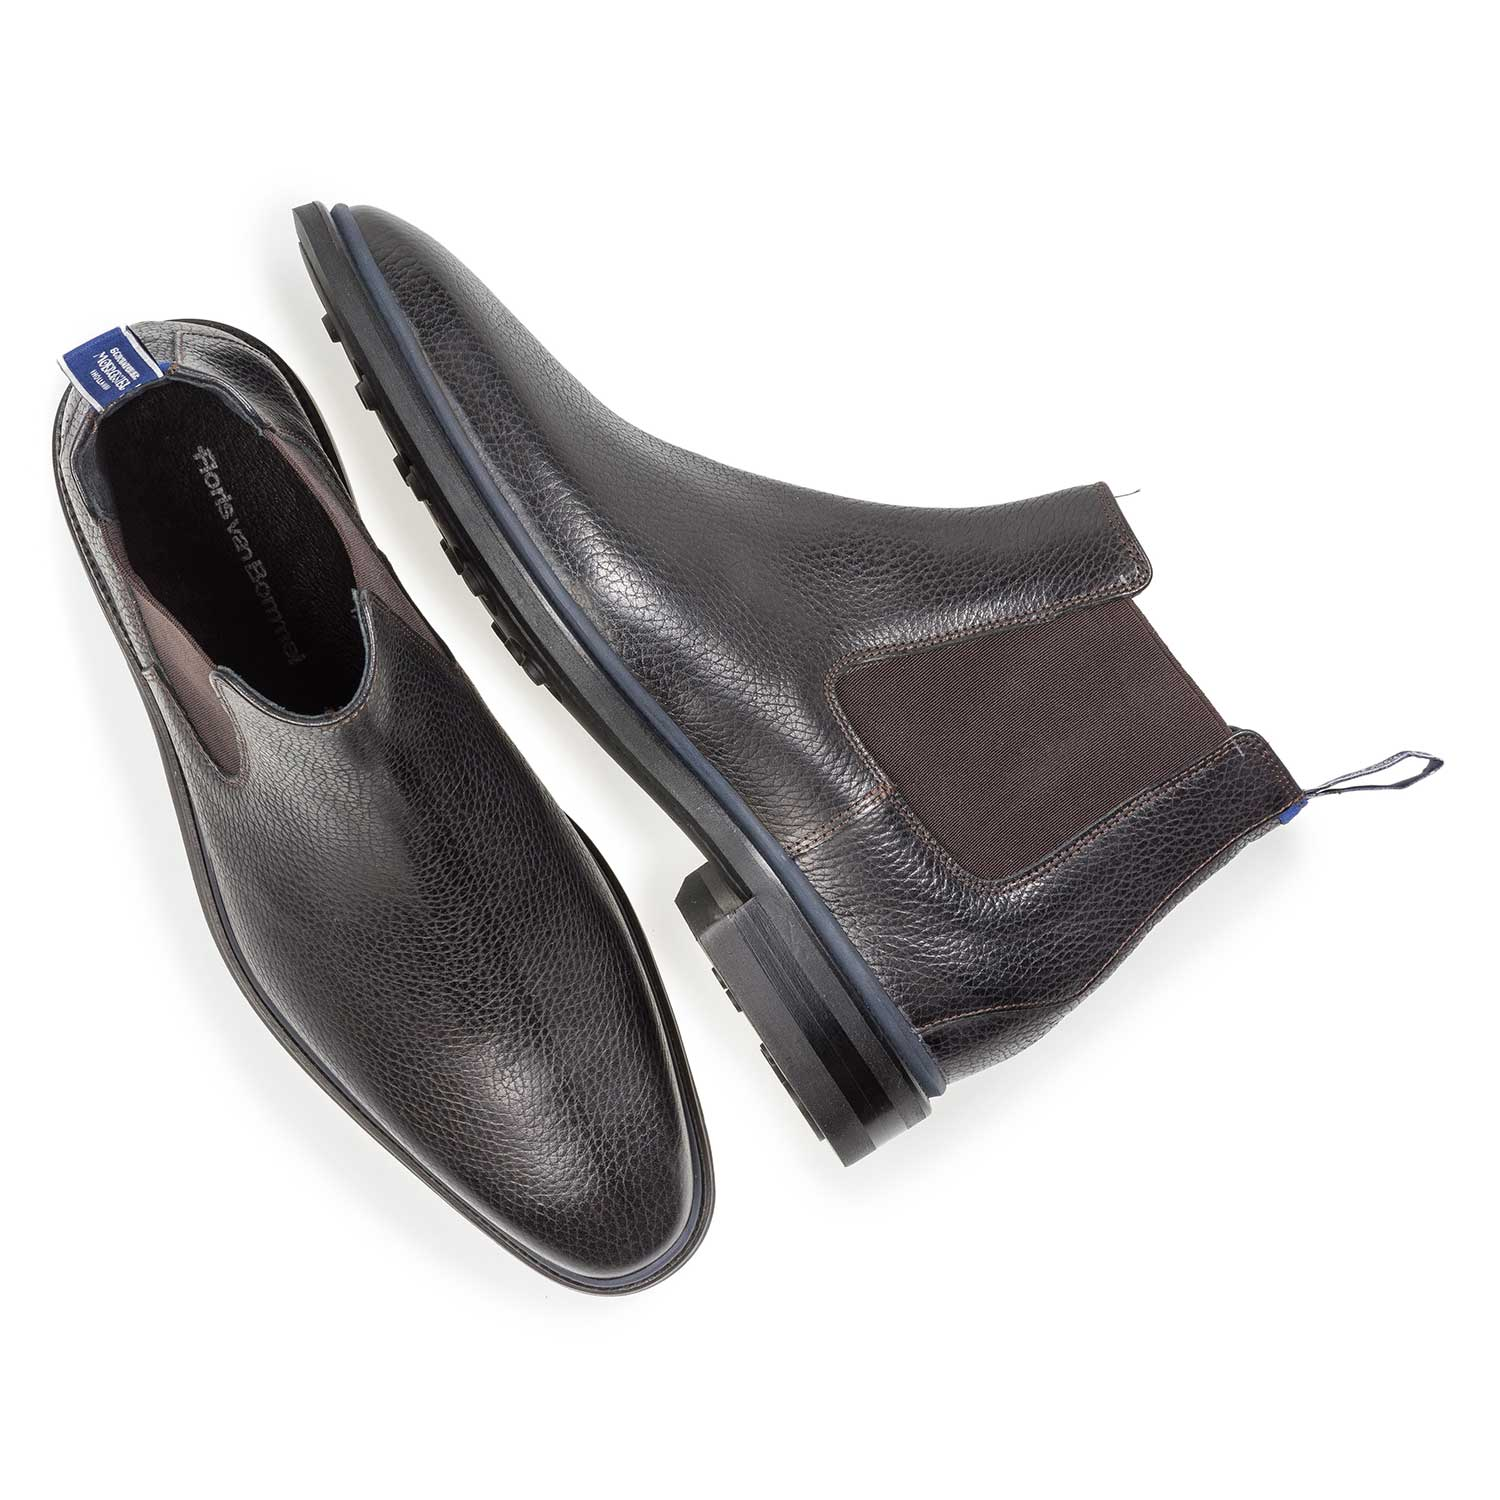 10669/05 - Black calf leather Chelsea boot with print